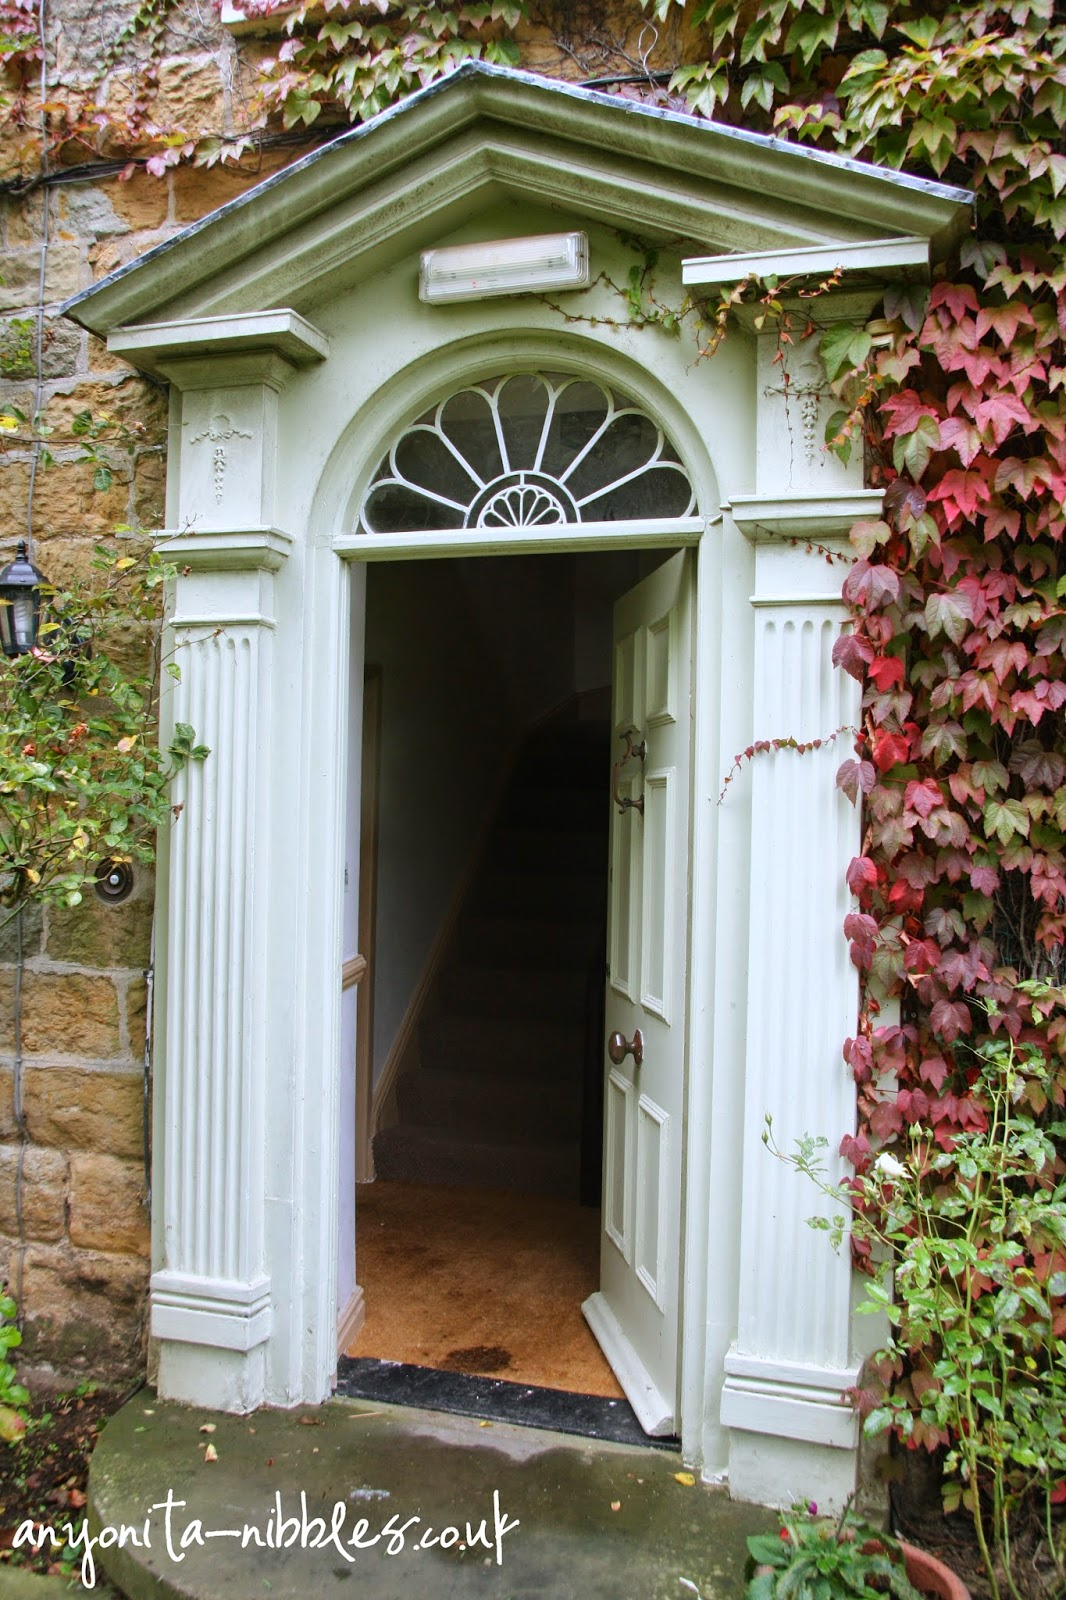 An open door creates an inviting atmosphere at Ox Pasture Hall Hotel | Anyonita-nibbles.co.uk